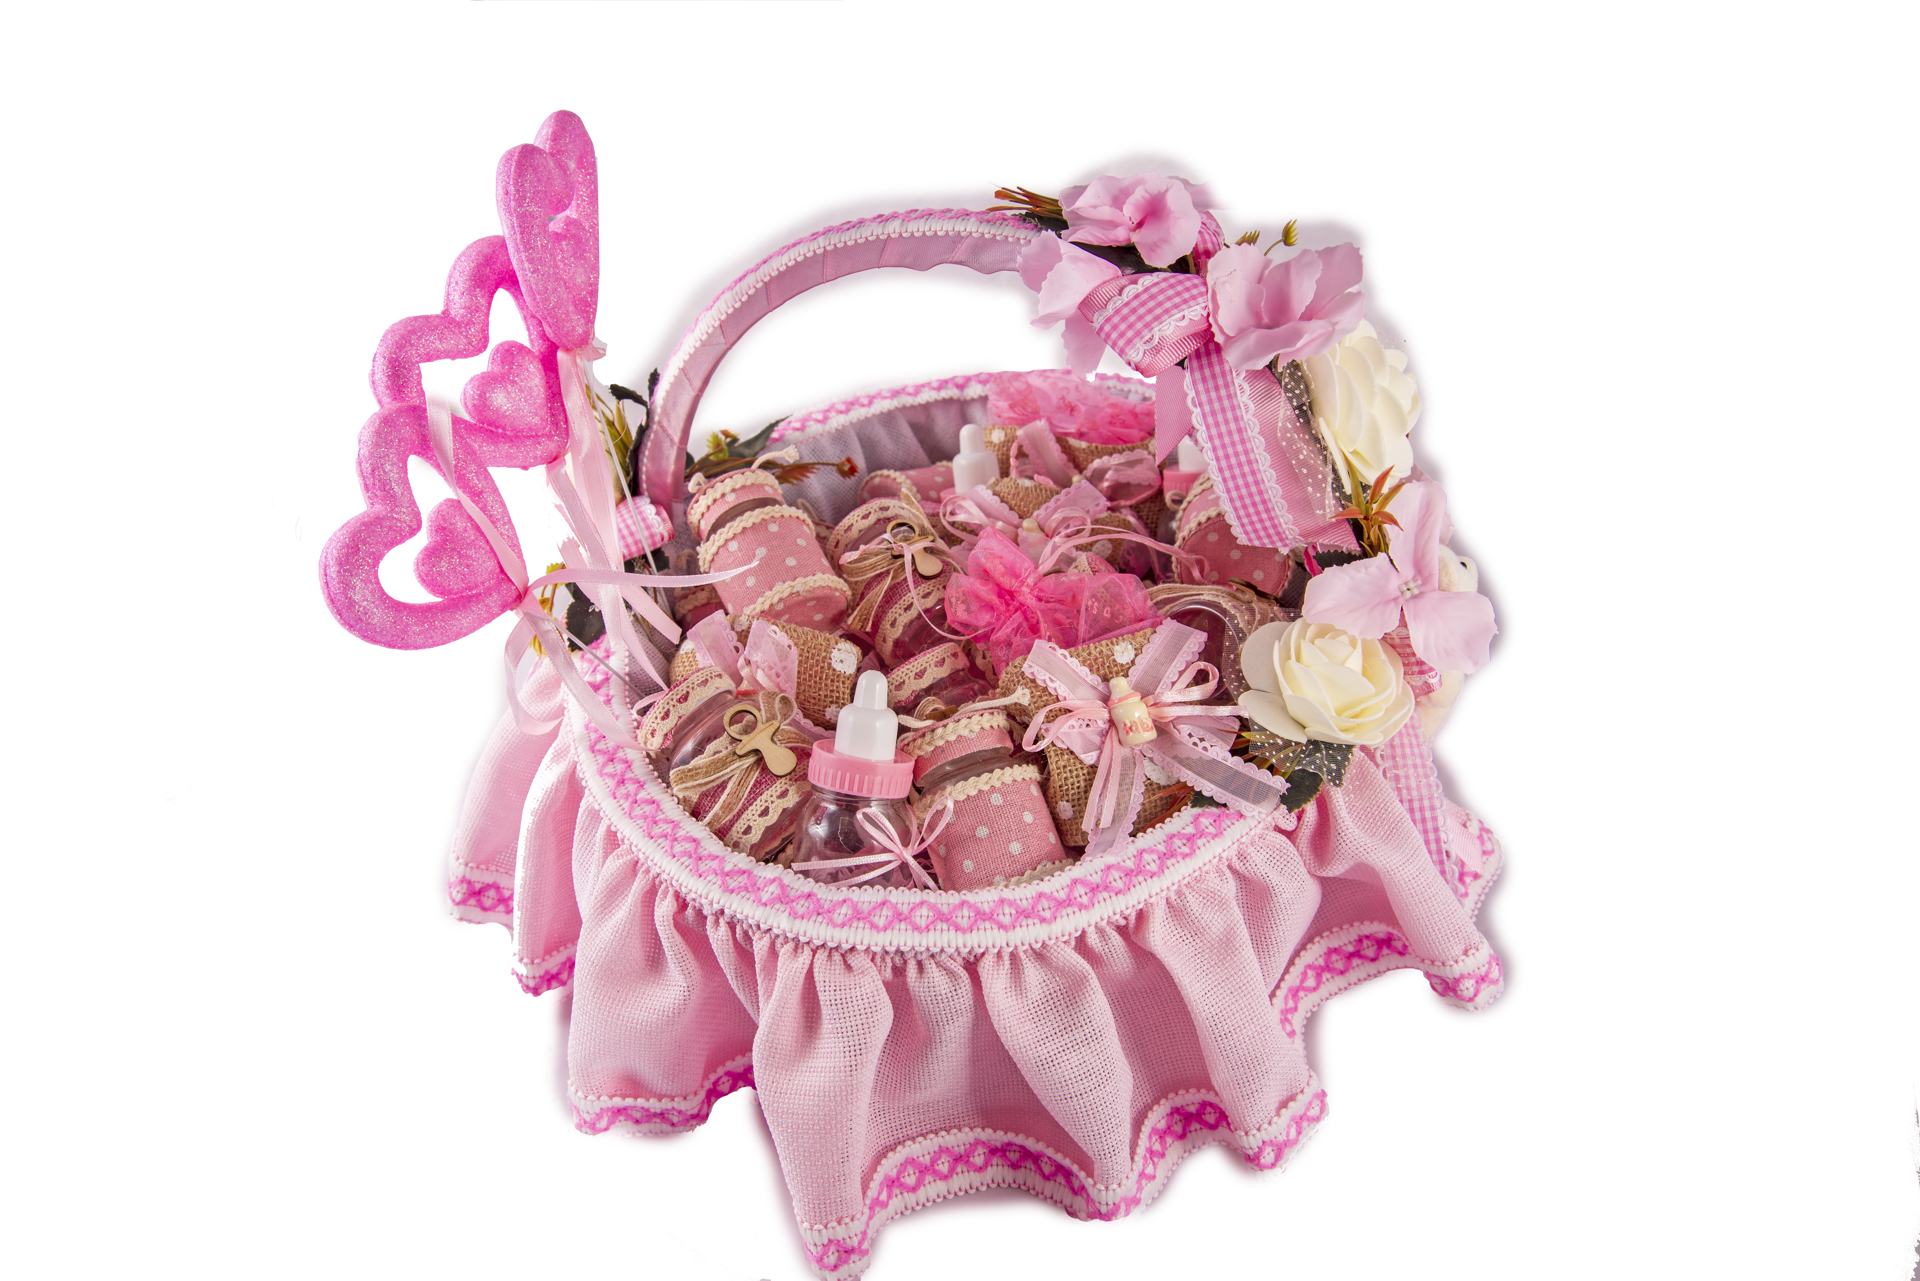 Picture of New born baby party basket  57 pieces pink color